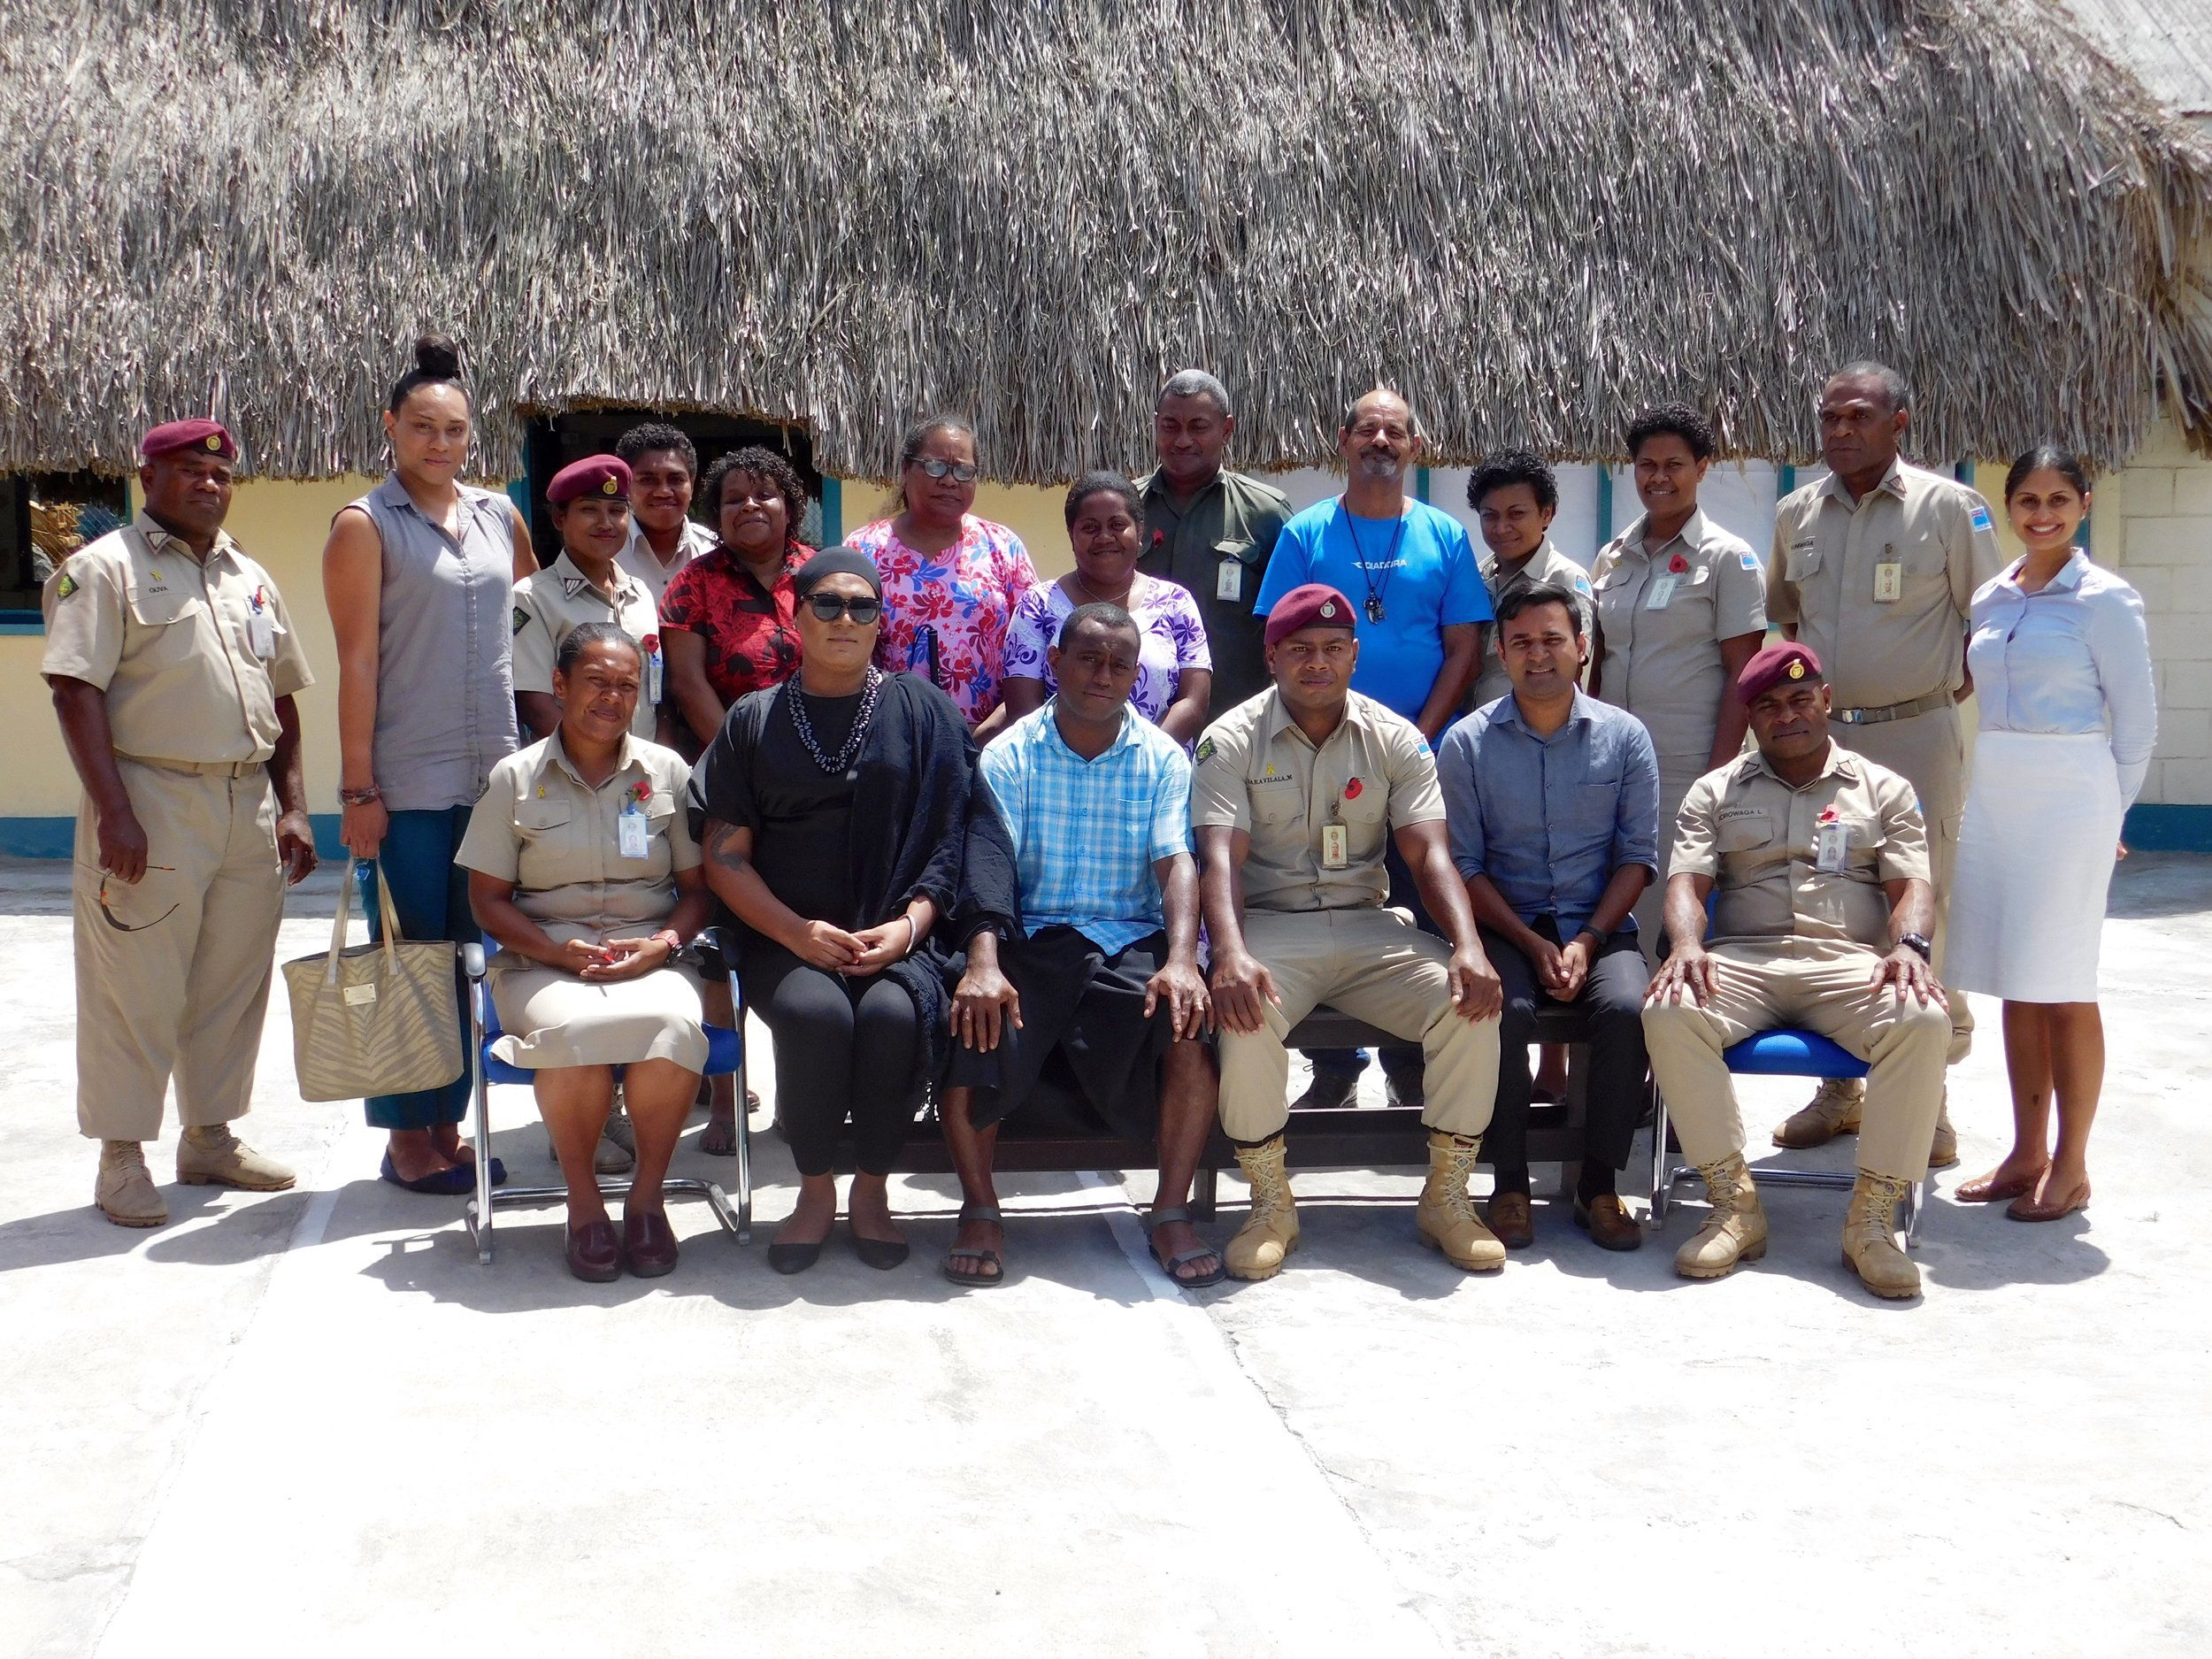 Photo: Participants and Facilitators at the OHCHR Training Course on Human Rights and Prisons. 16th-17th October 2017, Korovou Prison Complex, Fiji